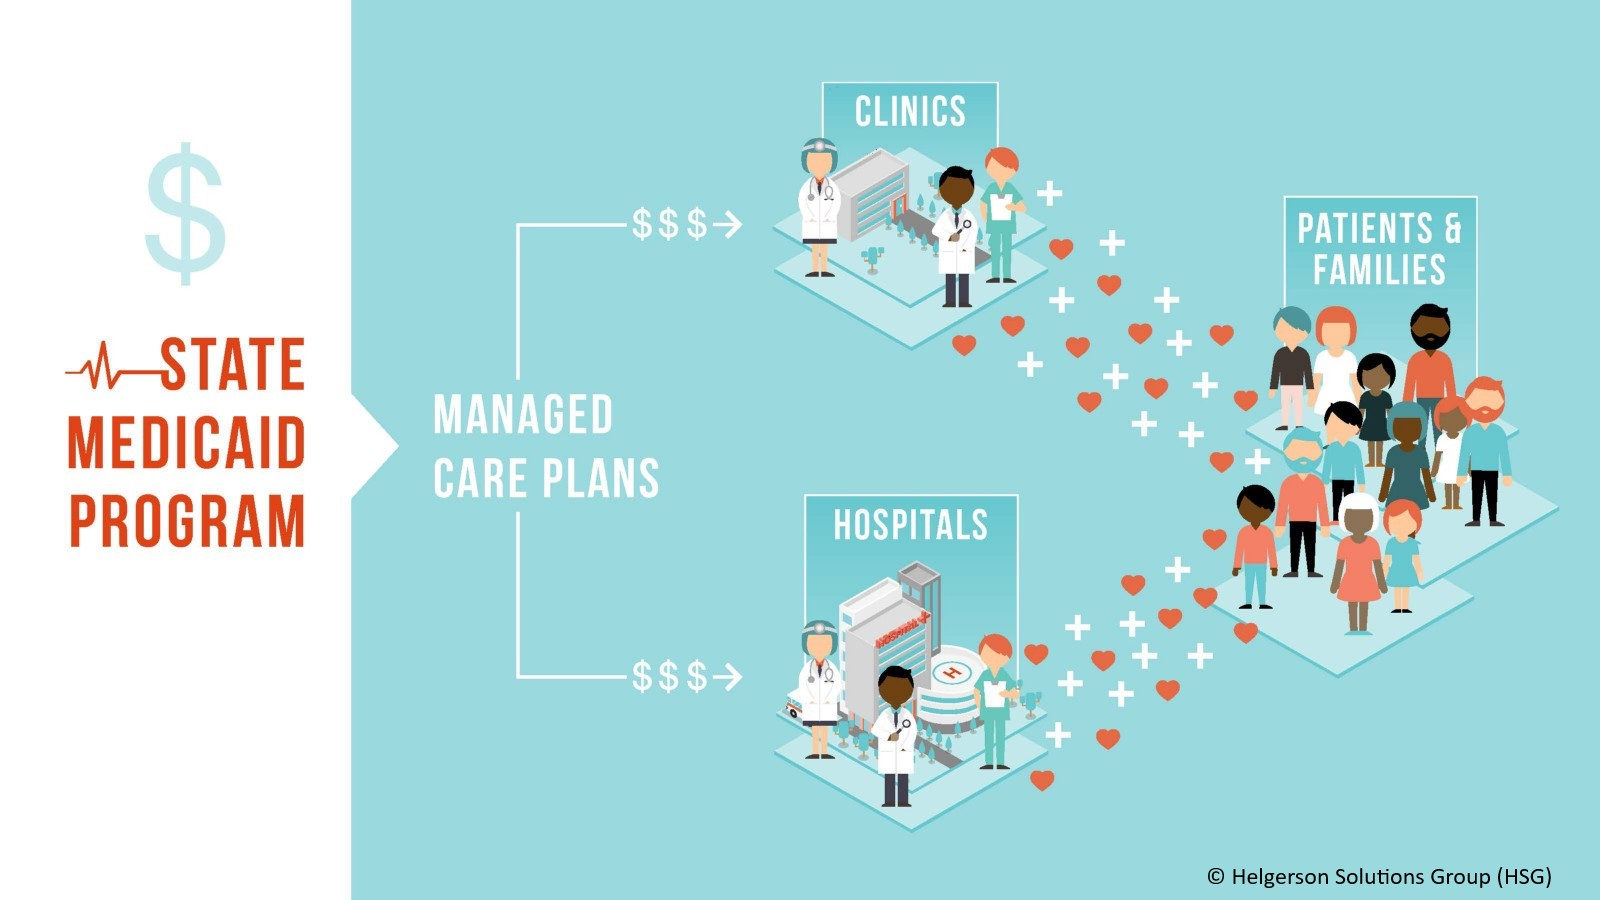 Dollars flow from Medicaid to MCOs to providers such as clinics, hospitals, doctors to provide the care that the end user experiences. [Source: HSG]